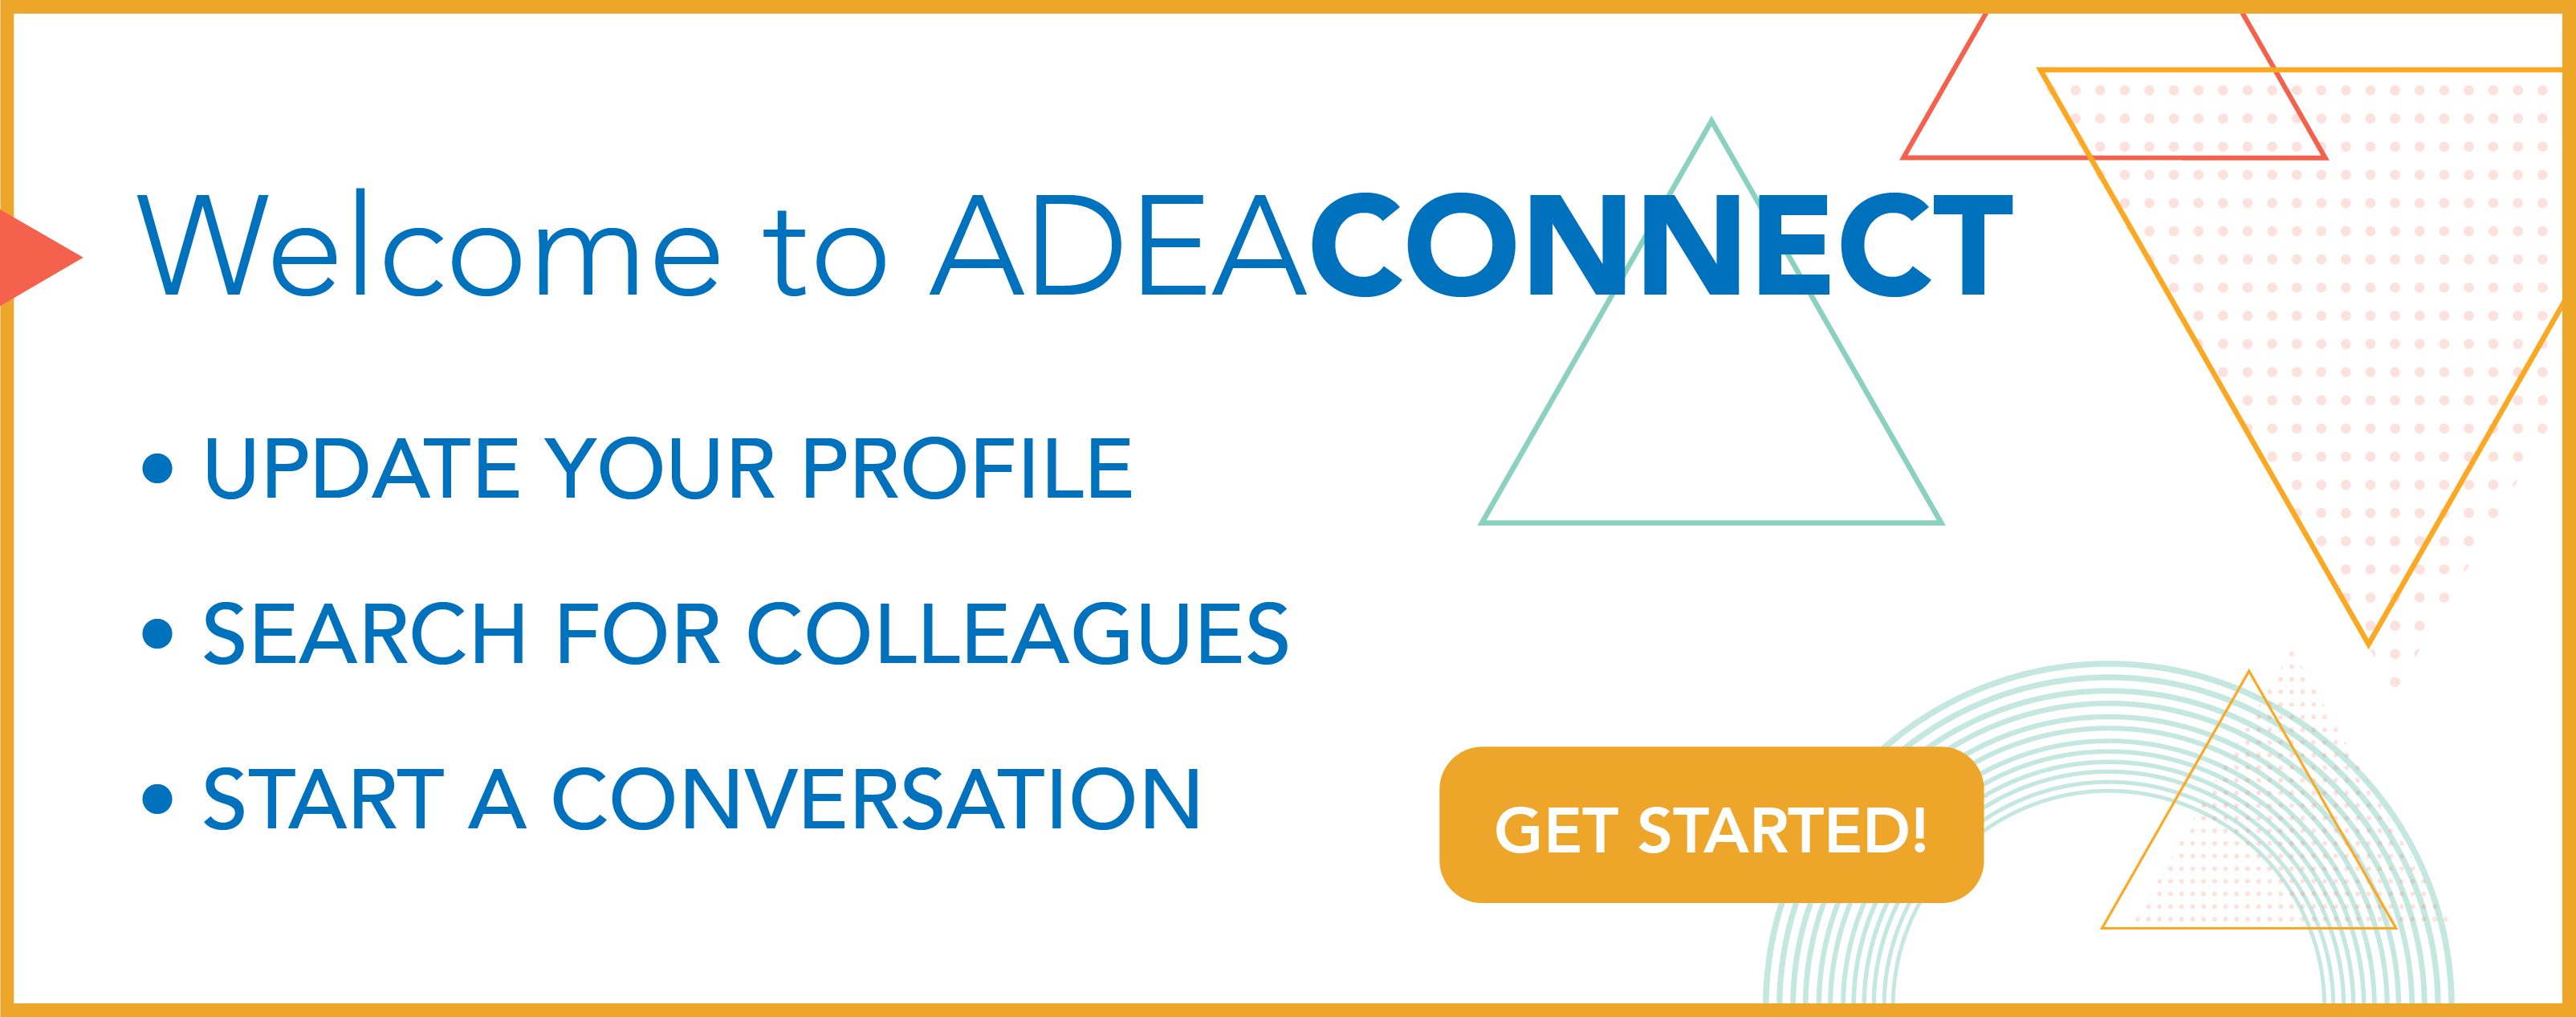 ADEA Connect placeholder